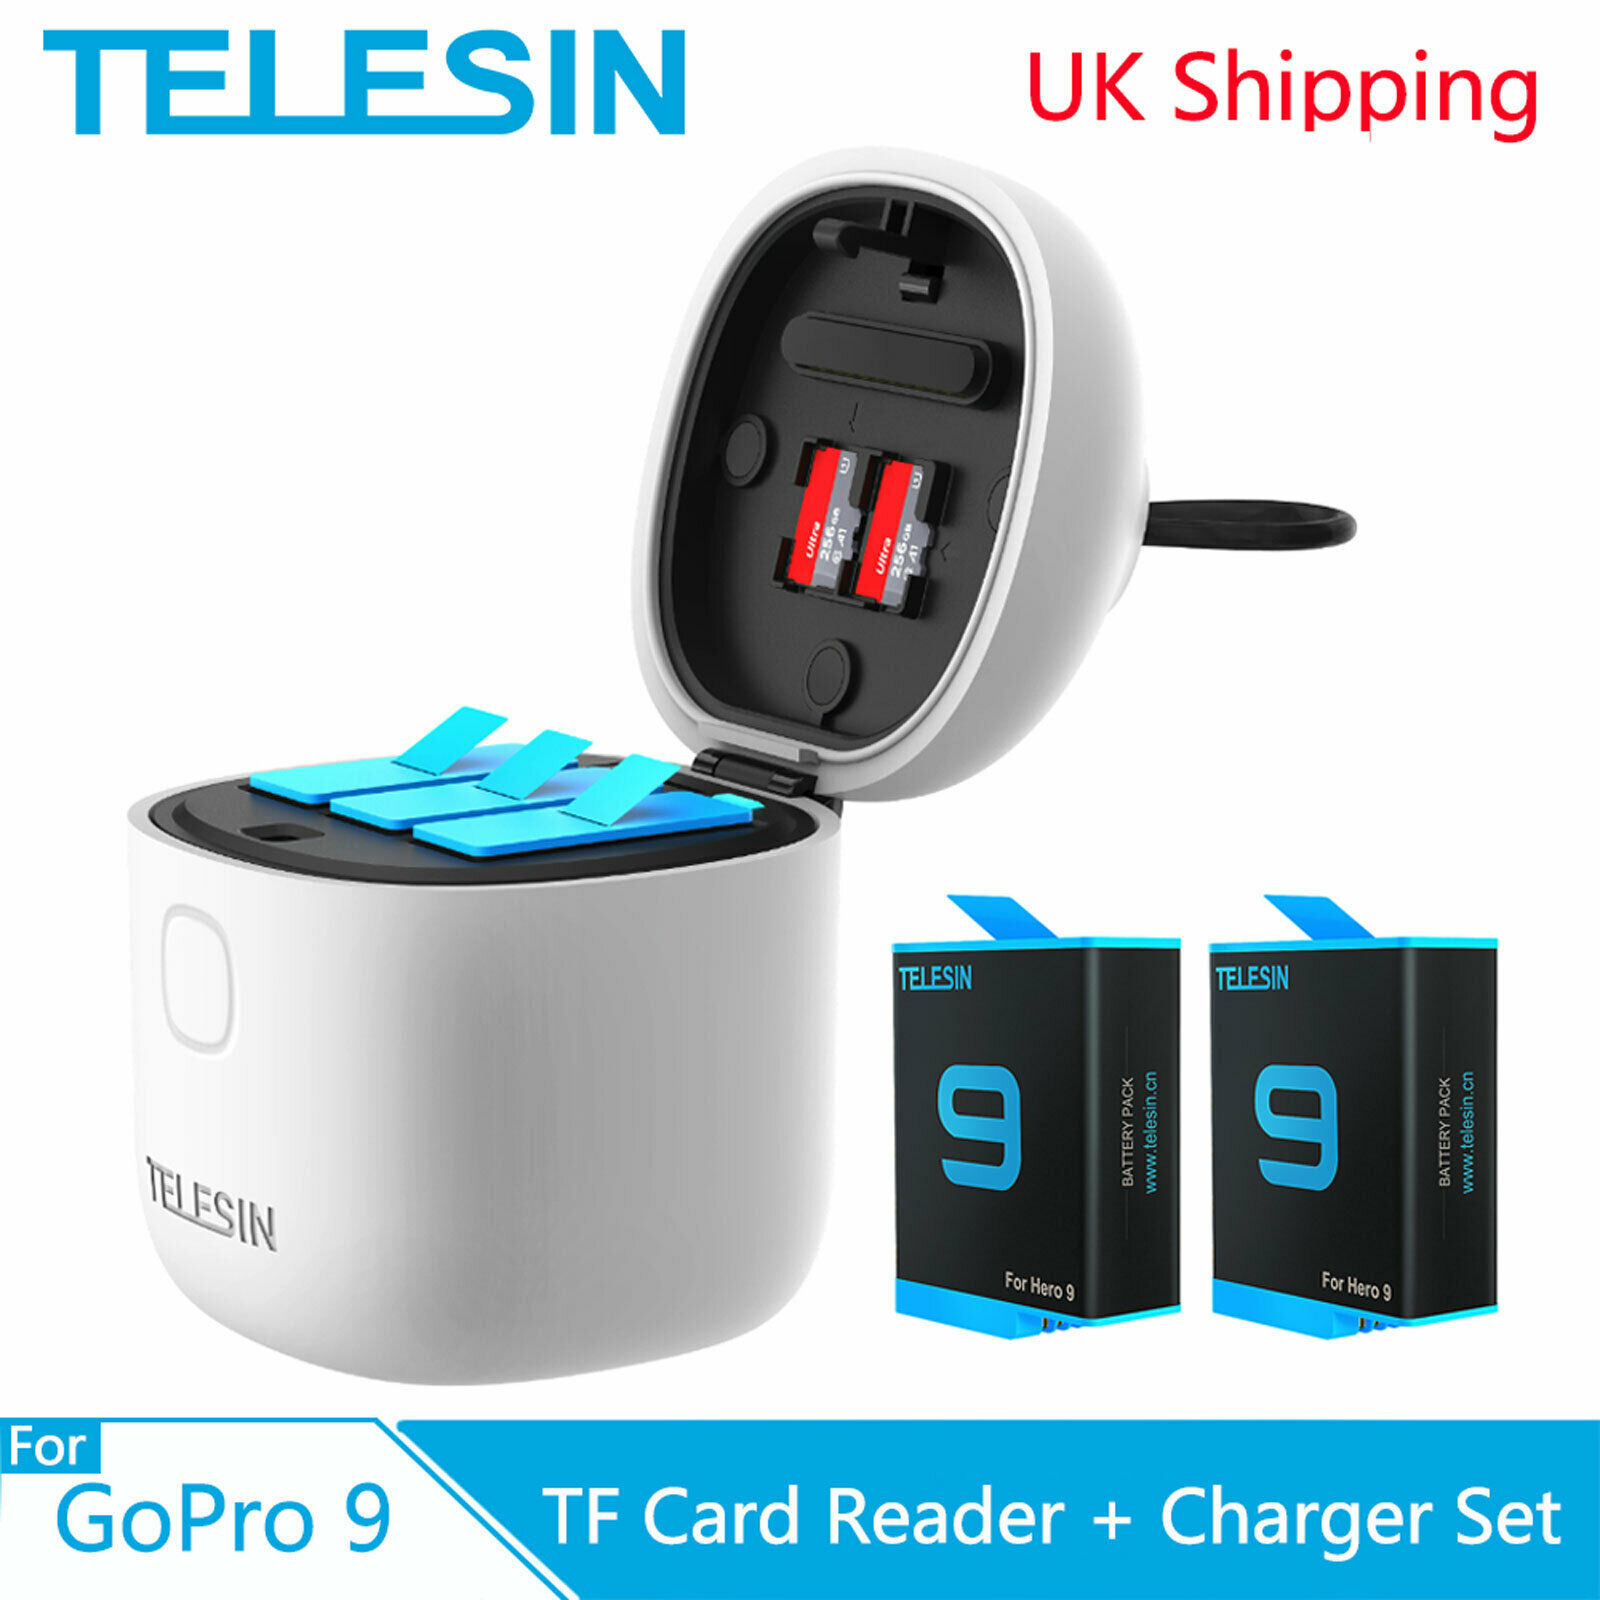 TELESIN 2 Pack Allin Box Battery Charger For GoPro Hero 10 9 Charging Storage